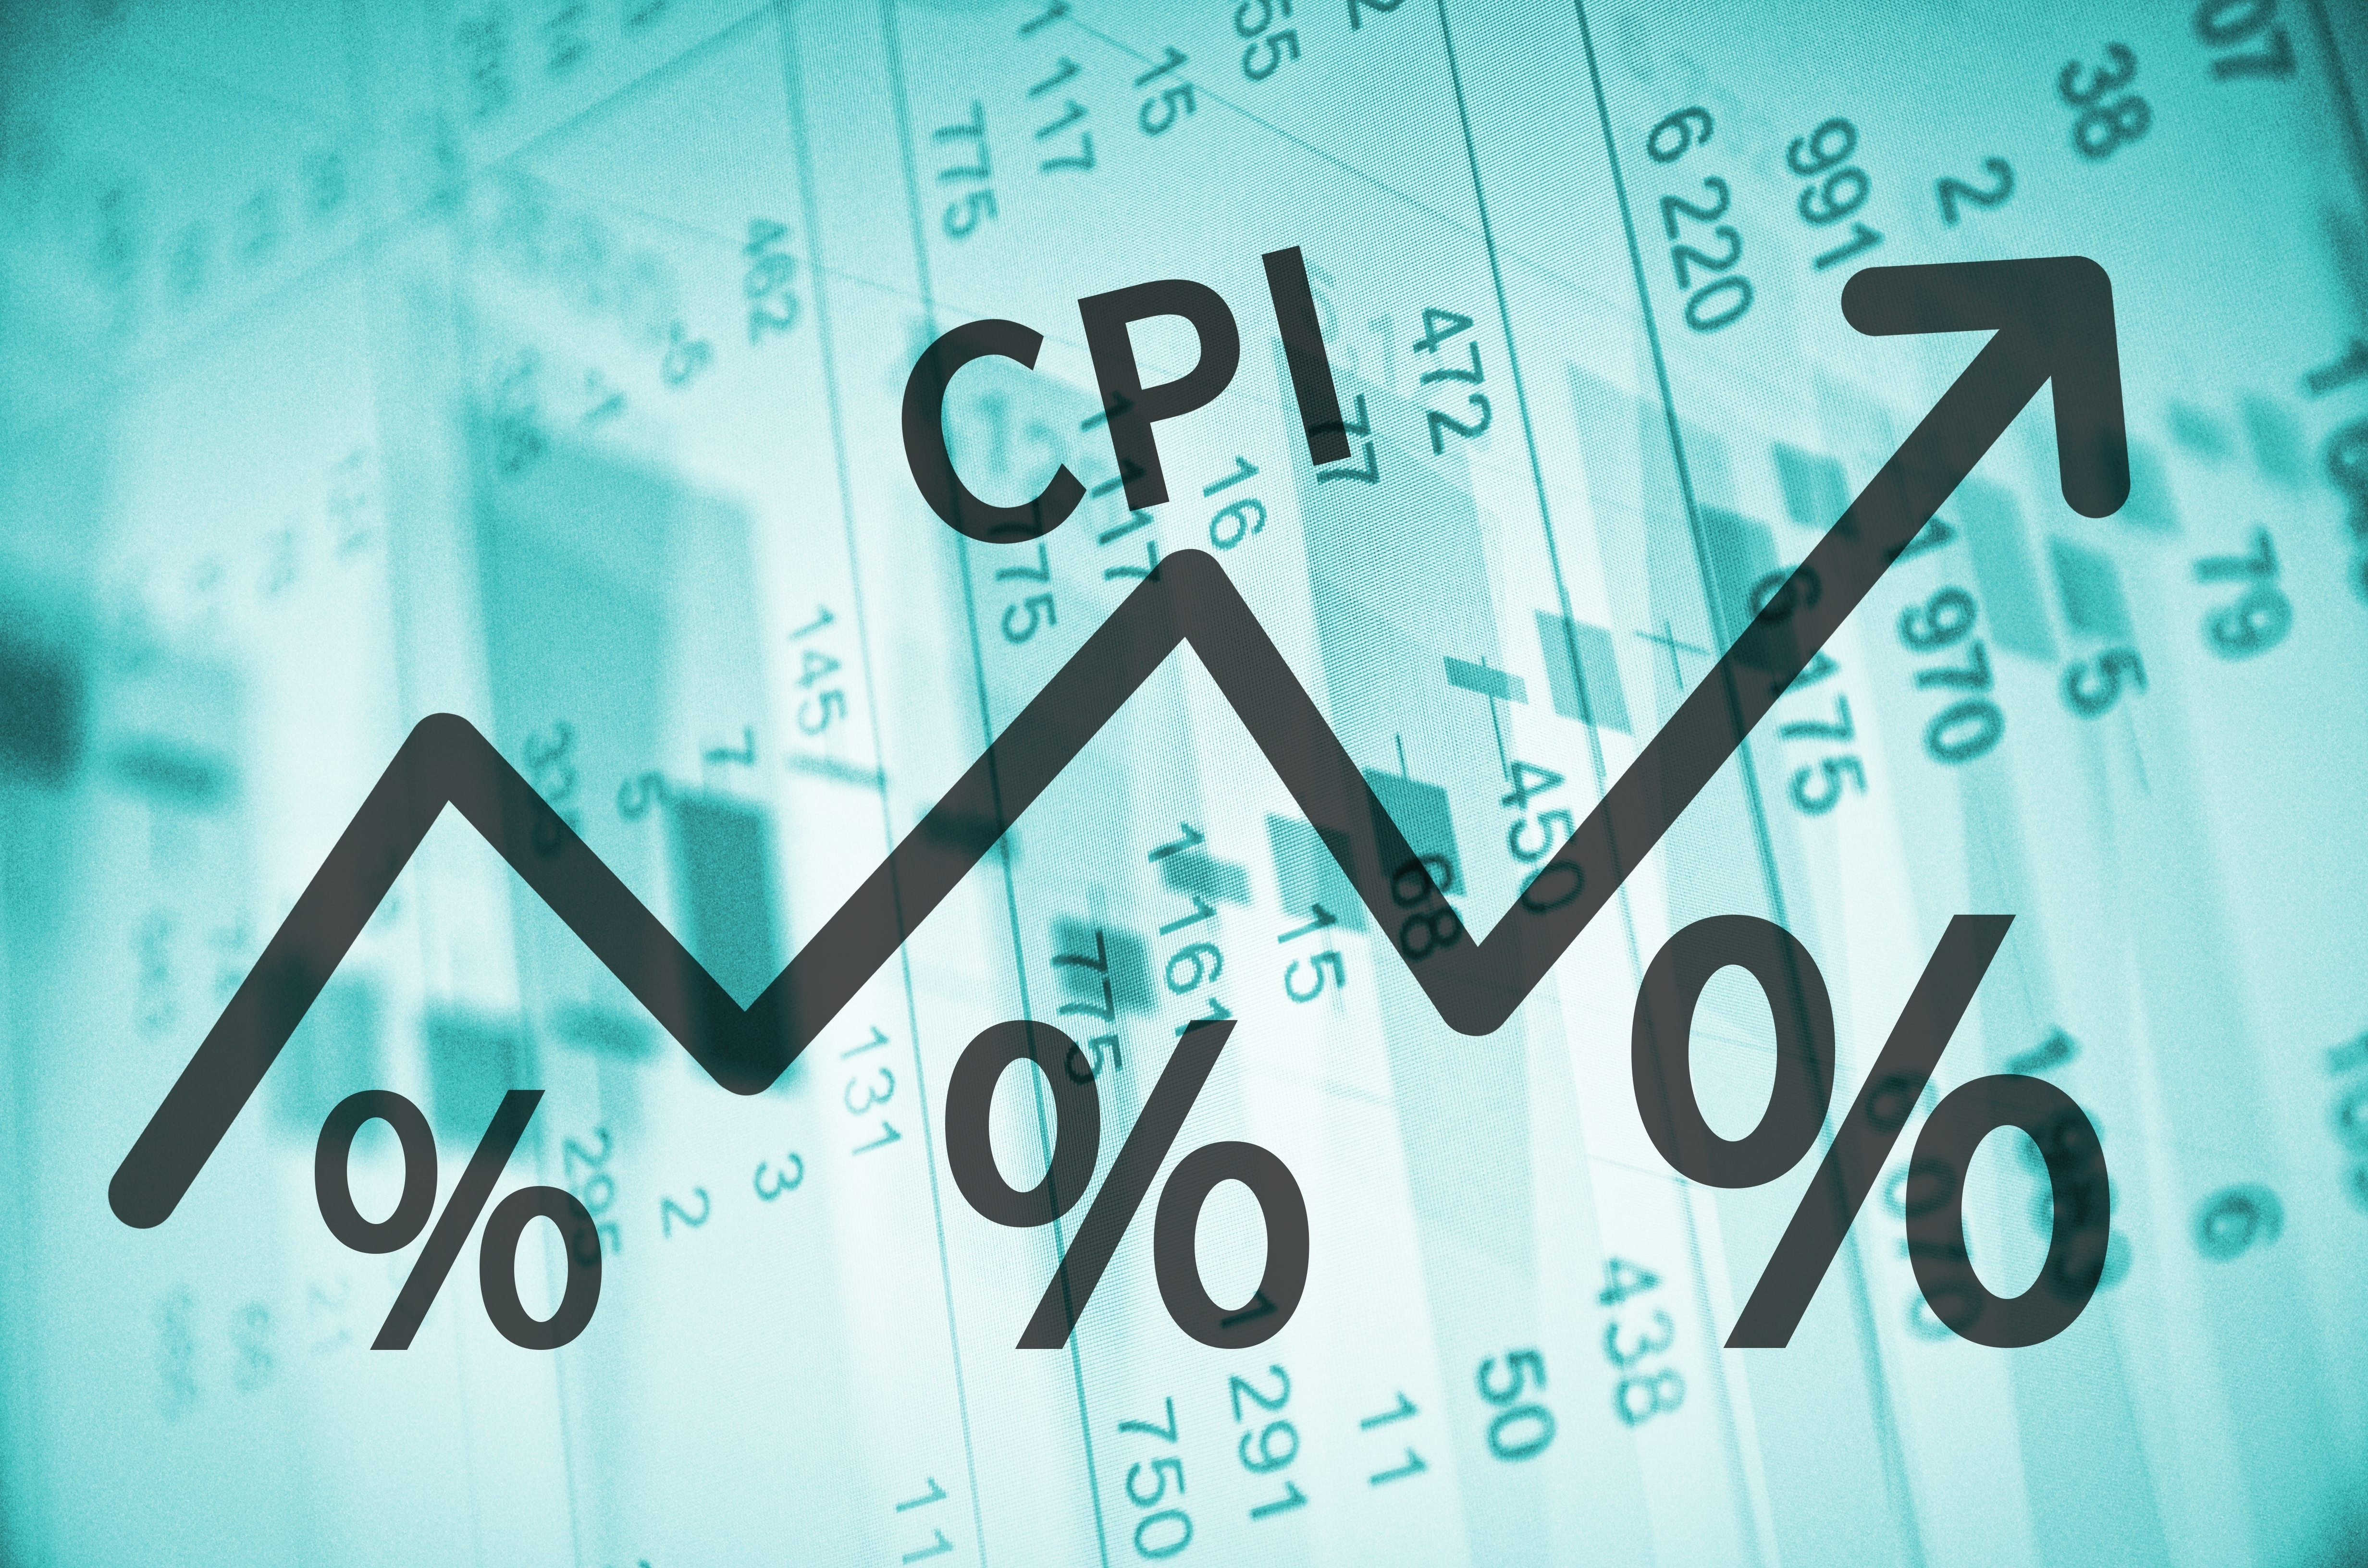 The CPI is used to evaluate price changes associated with a country's cost of living.